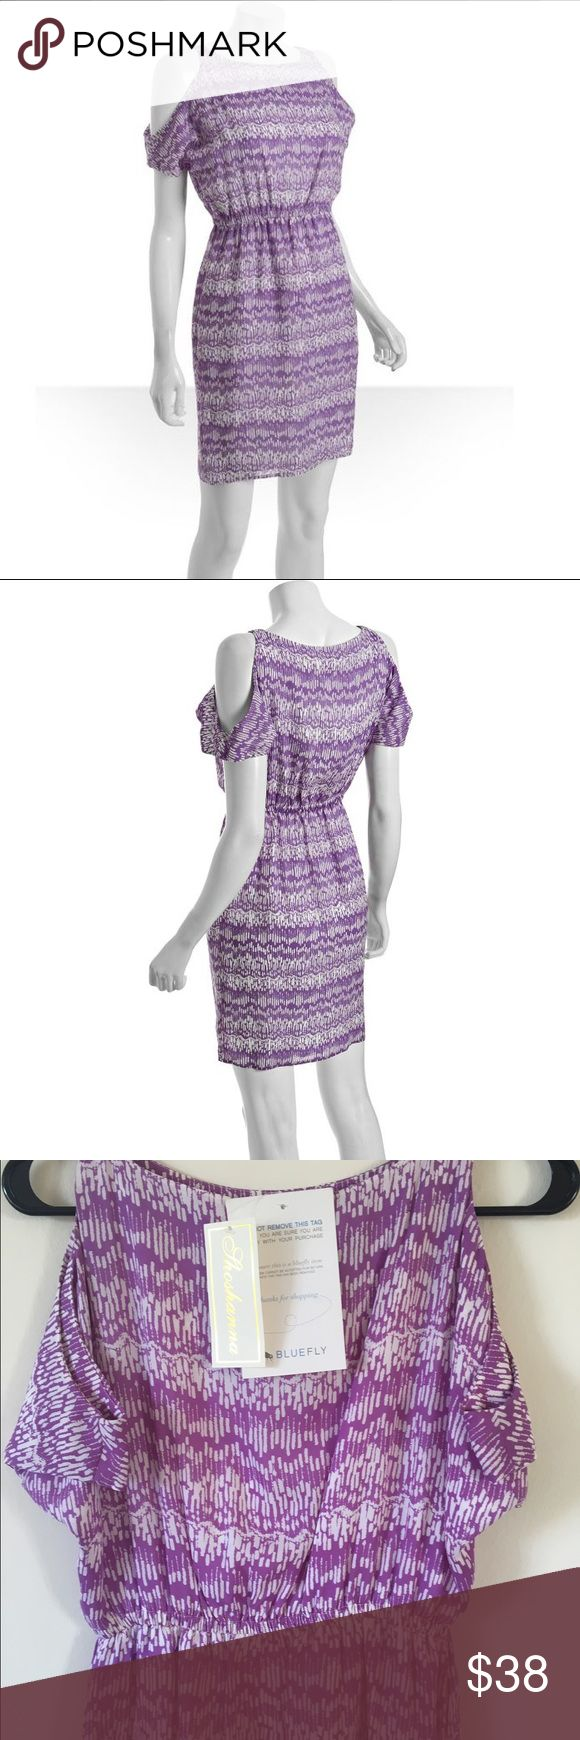 NWT - Violet Cut Out Shoulder Chiffon Dress Shoshanna dress. Great for a wedding or shower. Never worn, bought on Bluefly and has all tags attached. Shoshanna Dresses